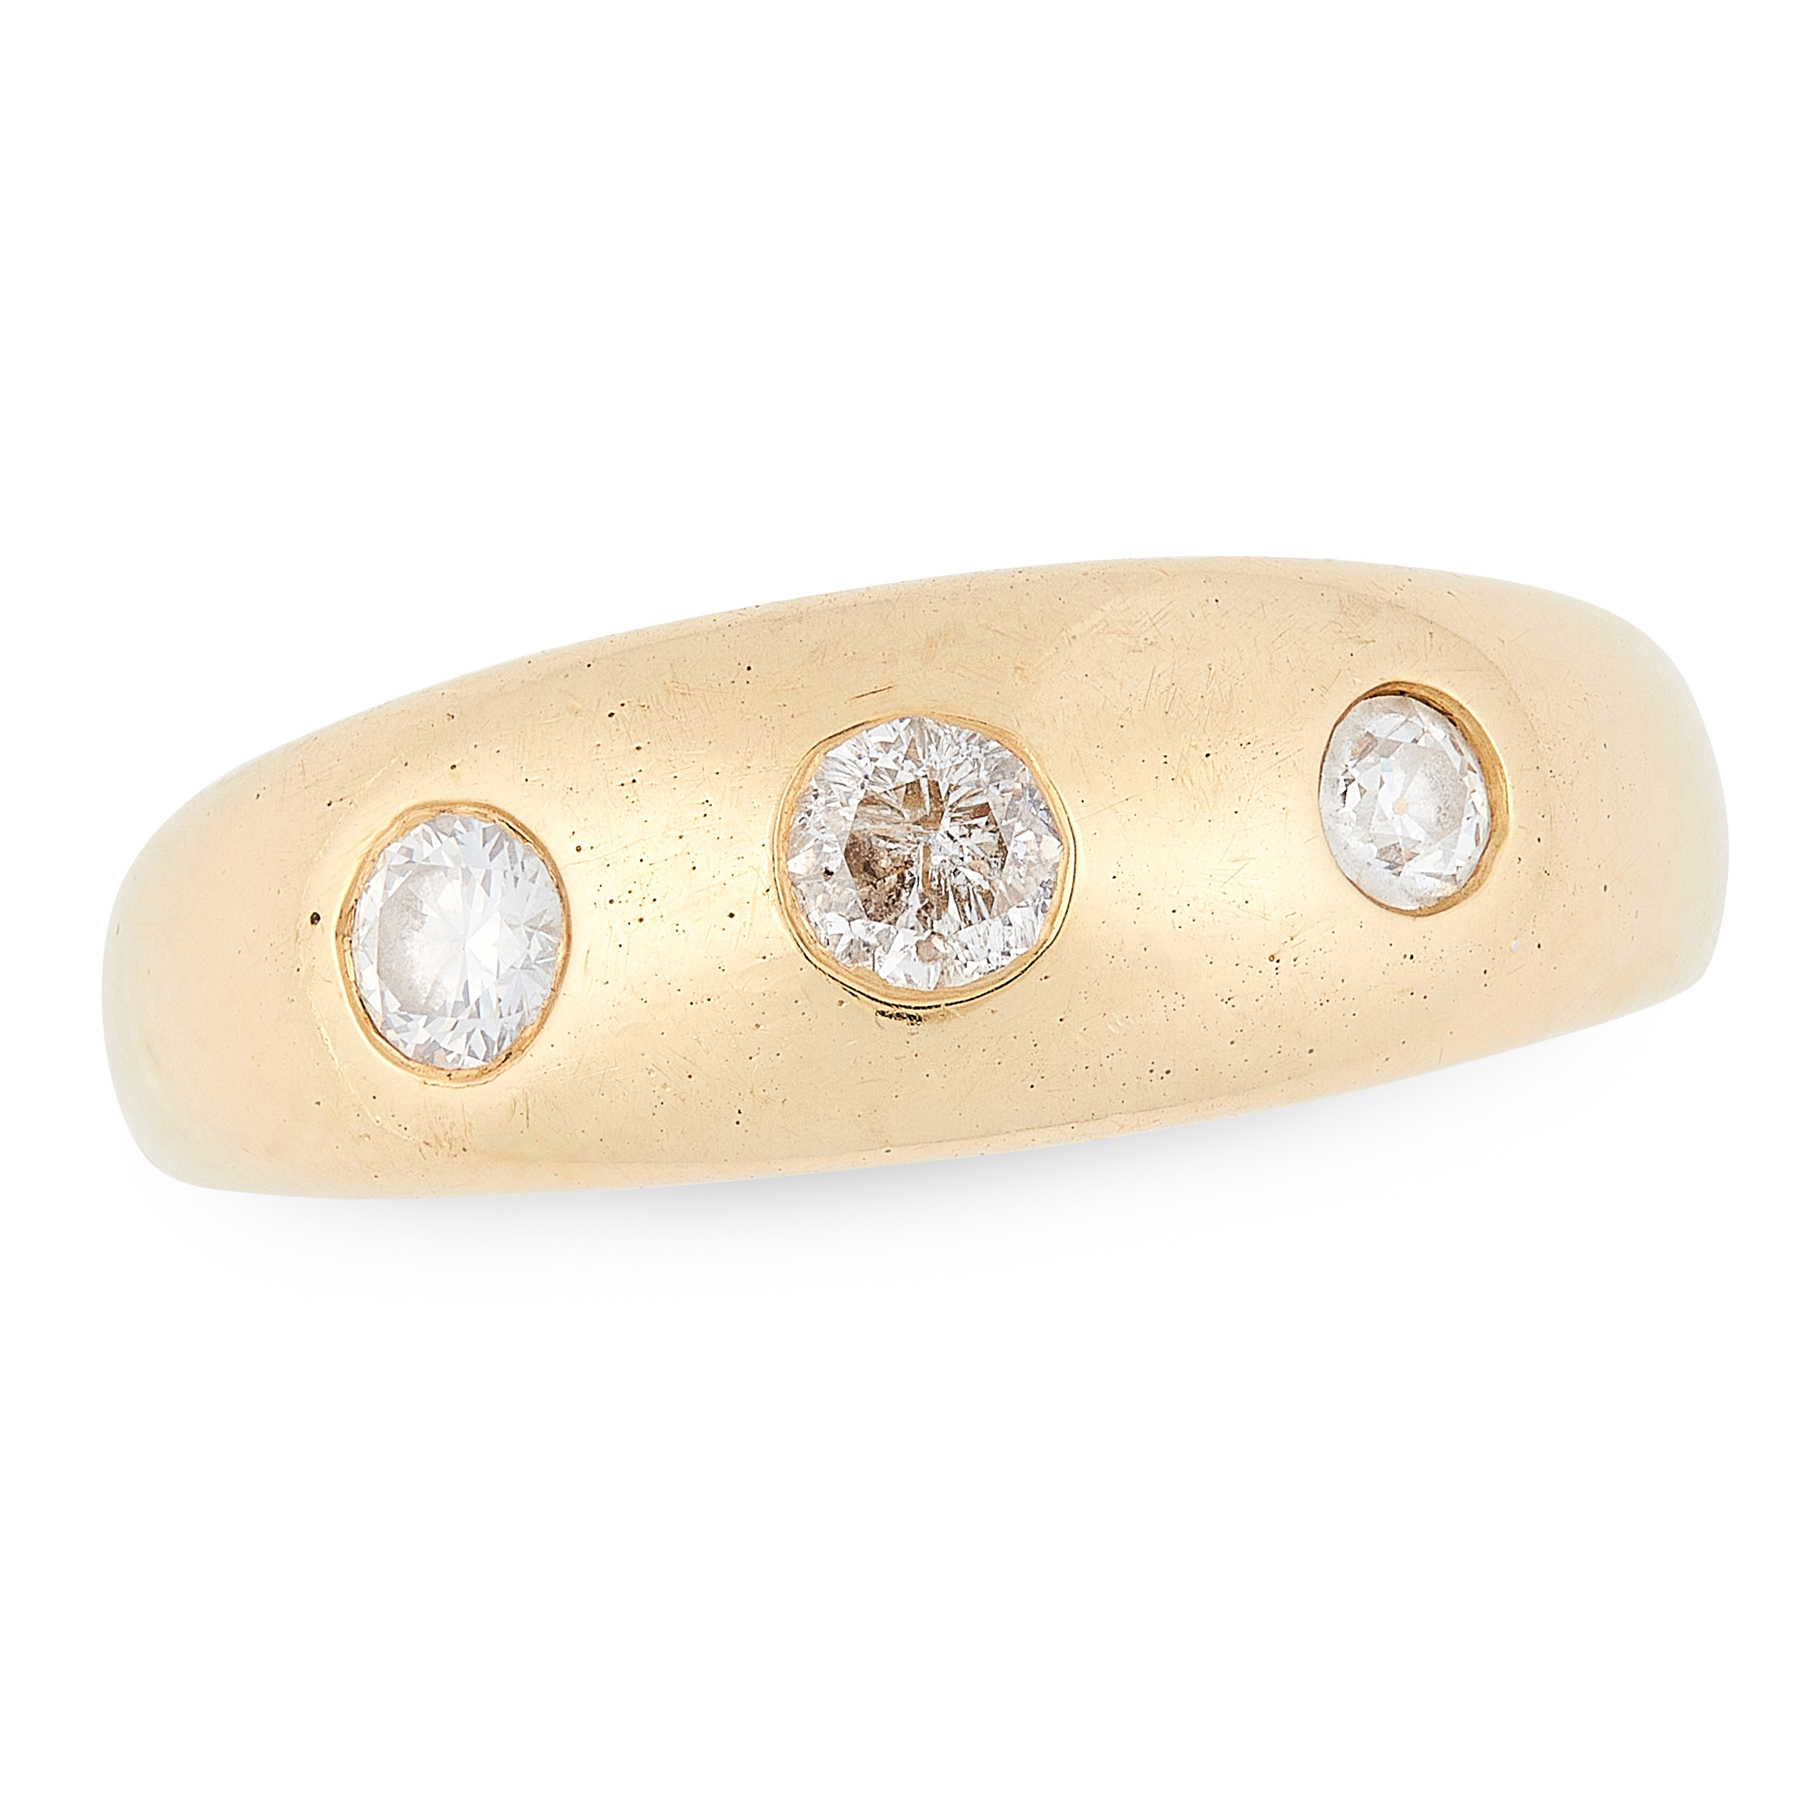 A THREE STONE DIAMOND GYPSY RING in 18ct yellow gold, the graduated band set with a trio of round